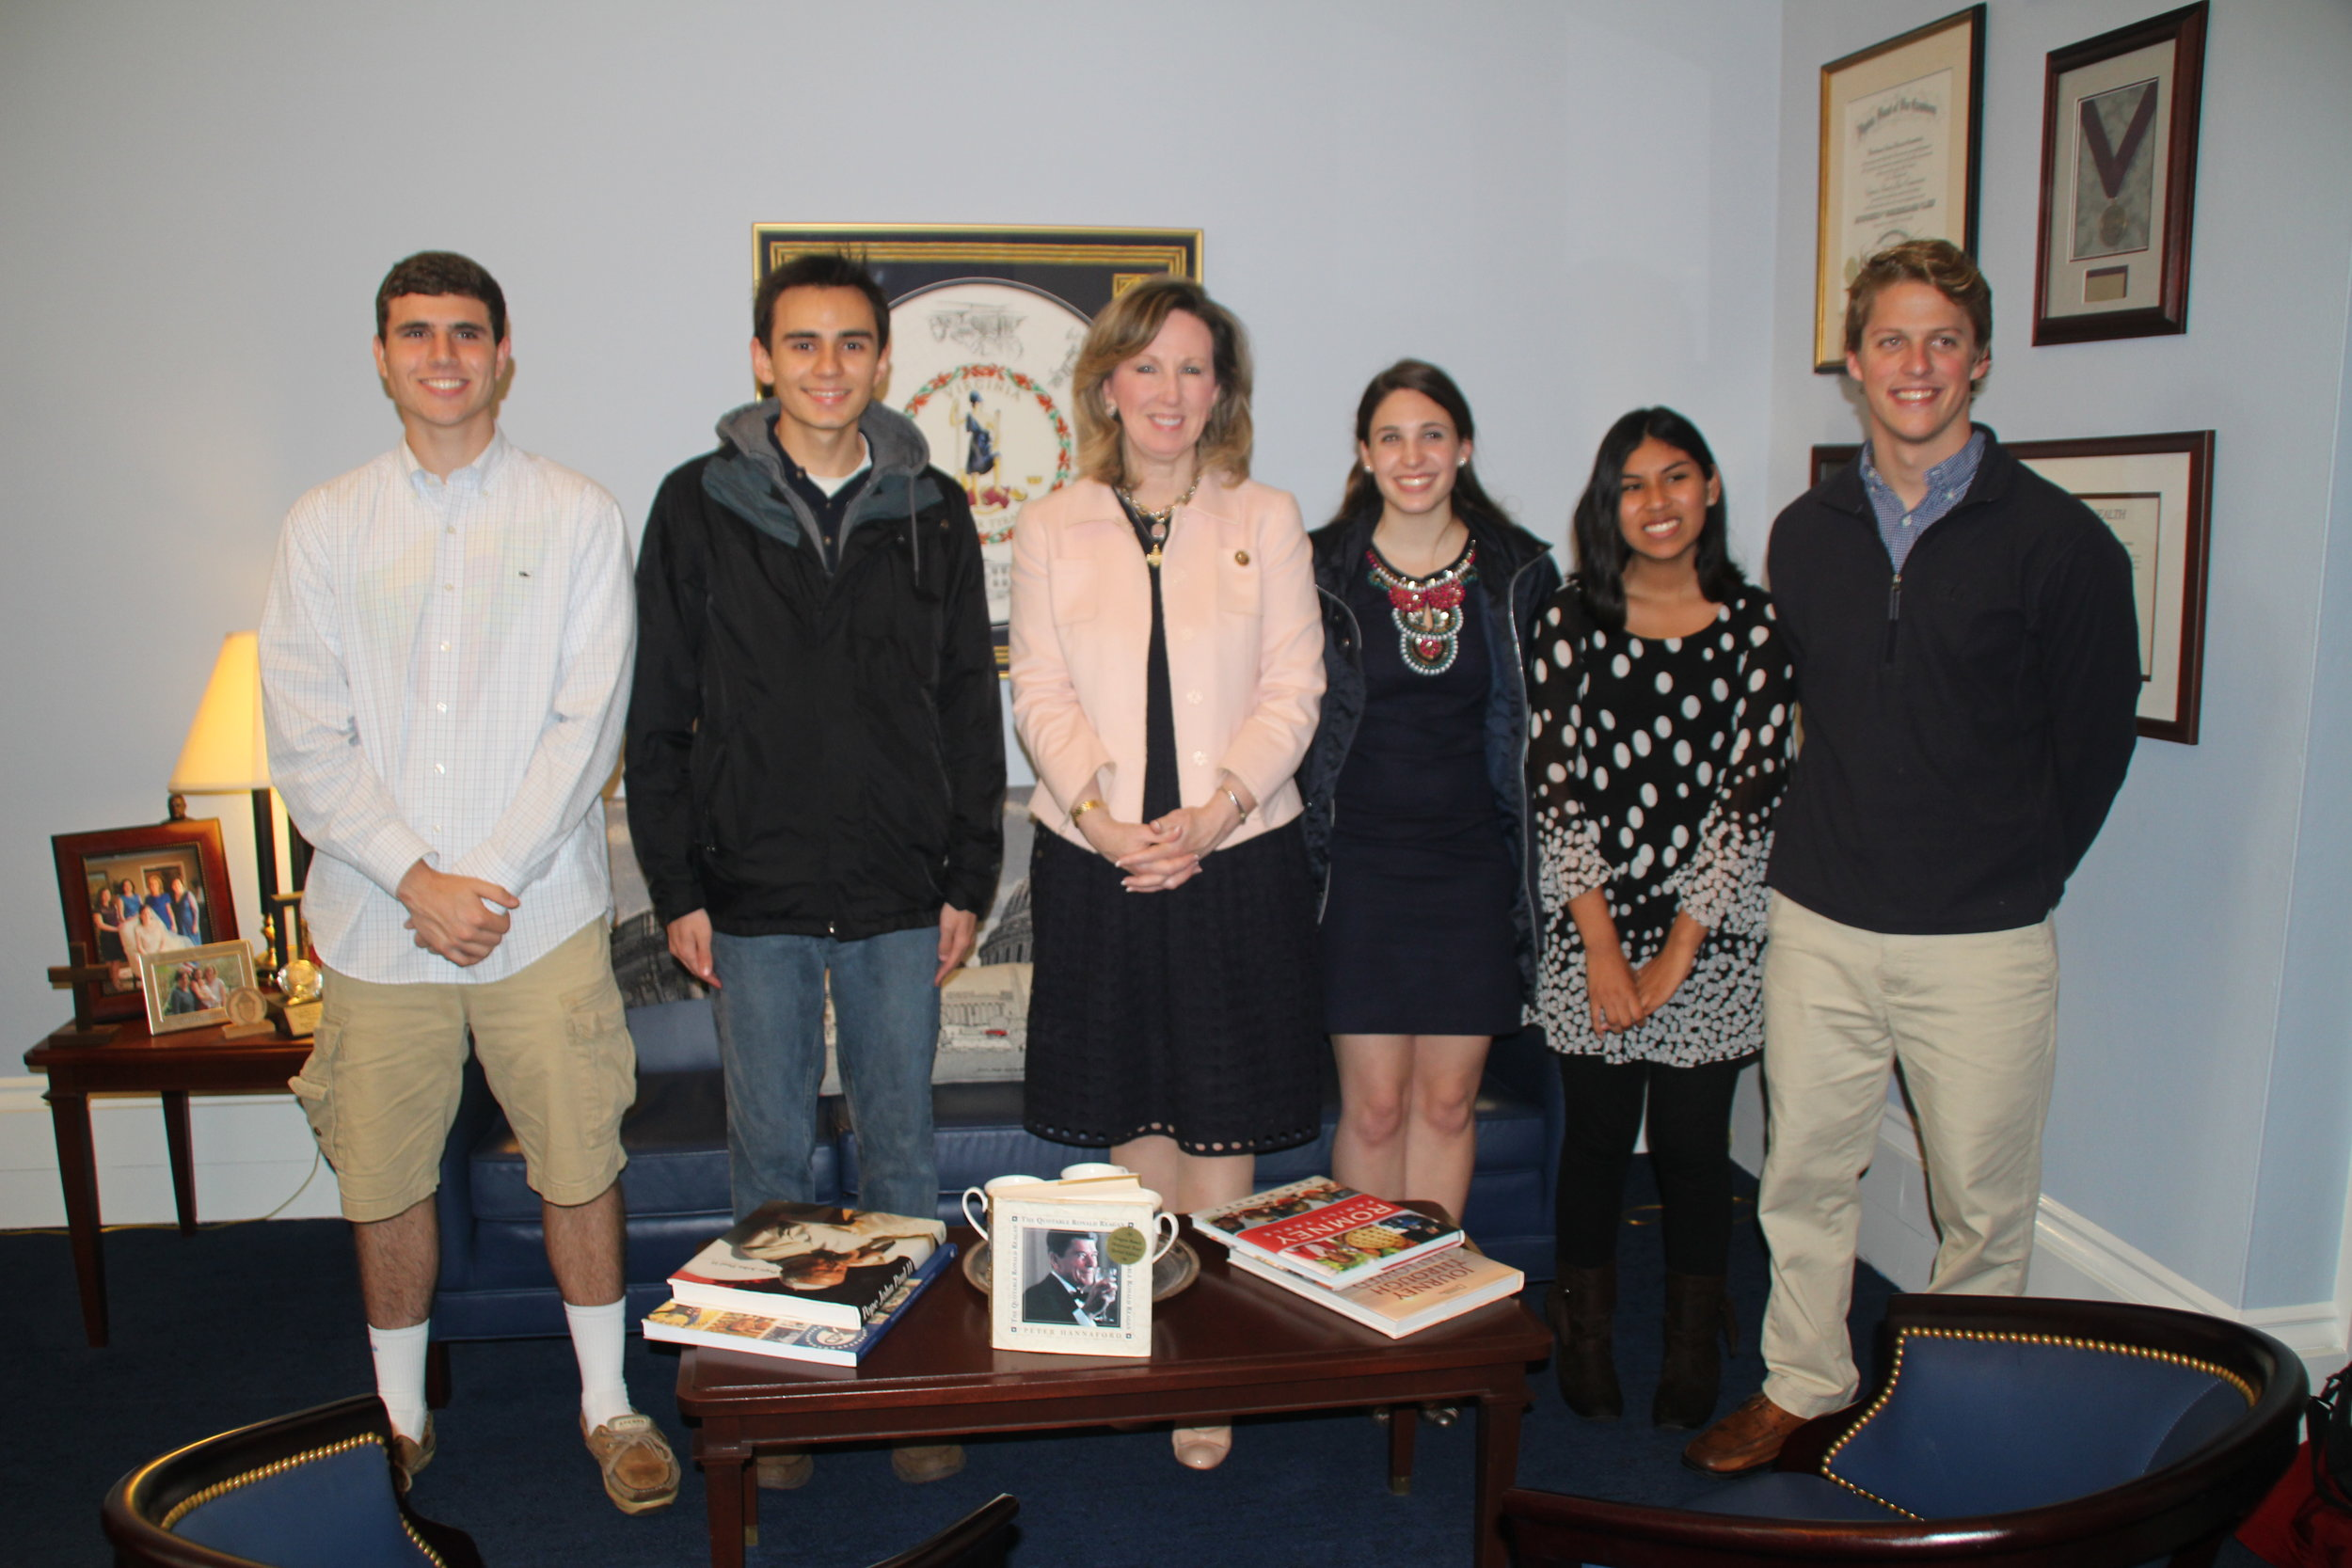 The winners in our $1000 scholarship contest are visiting Congresswoman Comstock's office